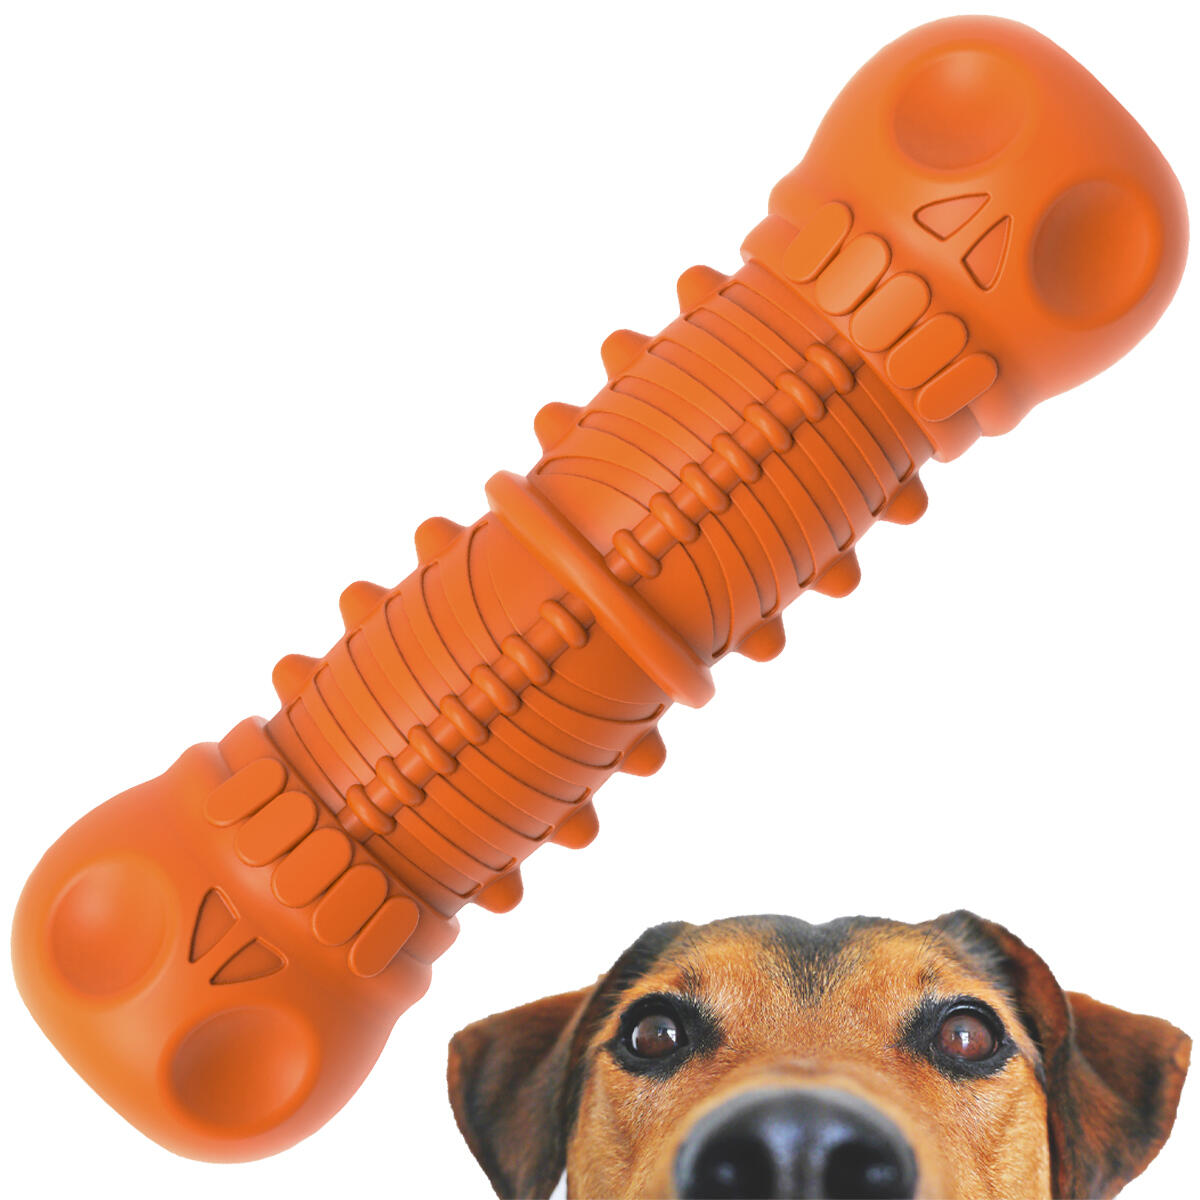 YukiHobby Dog Toys with Squeaky for Aggressive Chewers Large Breed Indestructible Rubber Interactive Molar Milk Flavor Orange